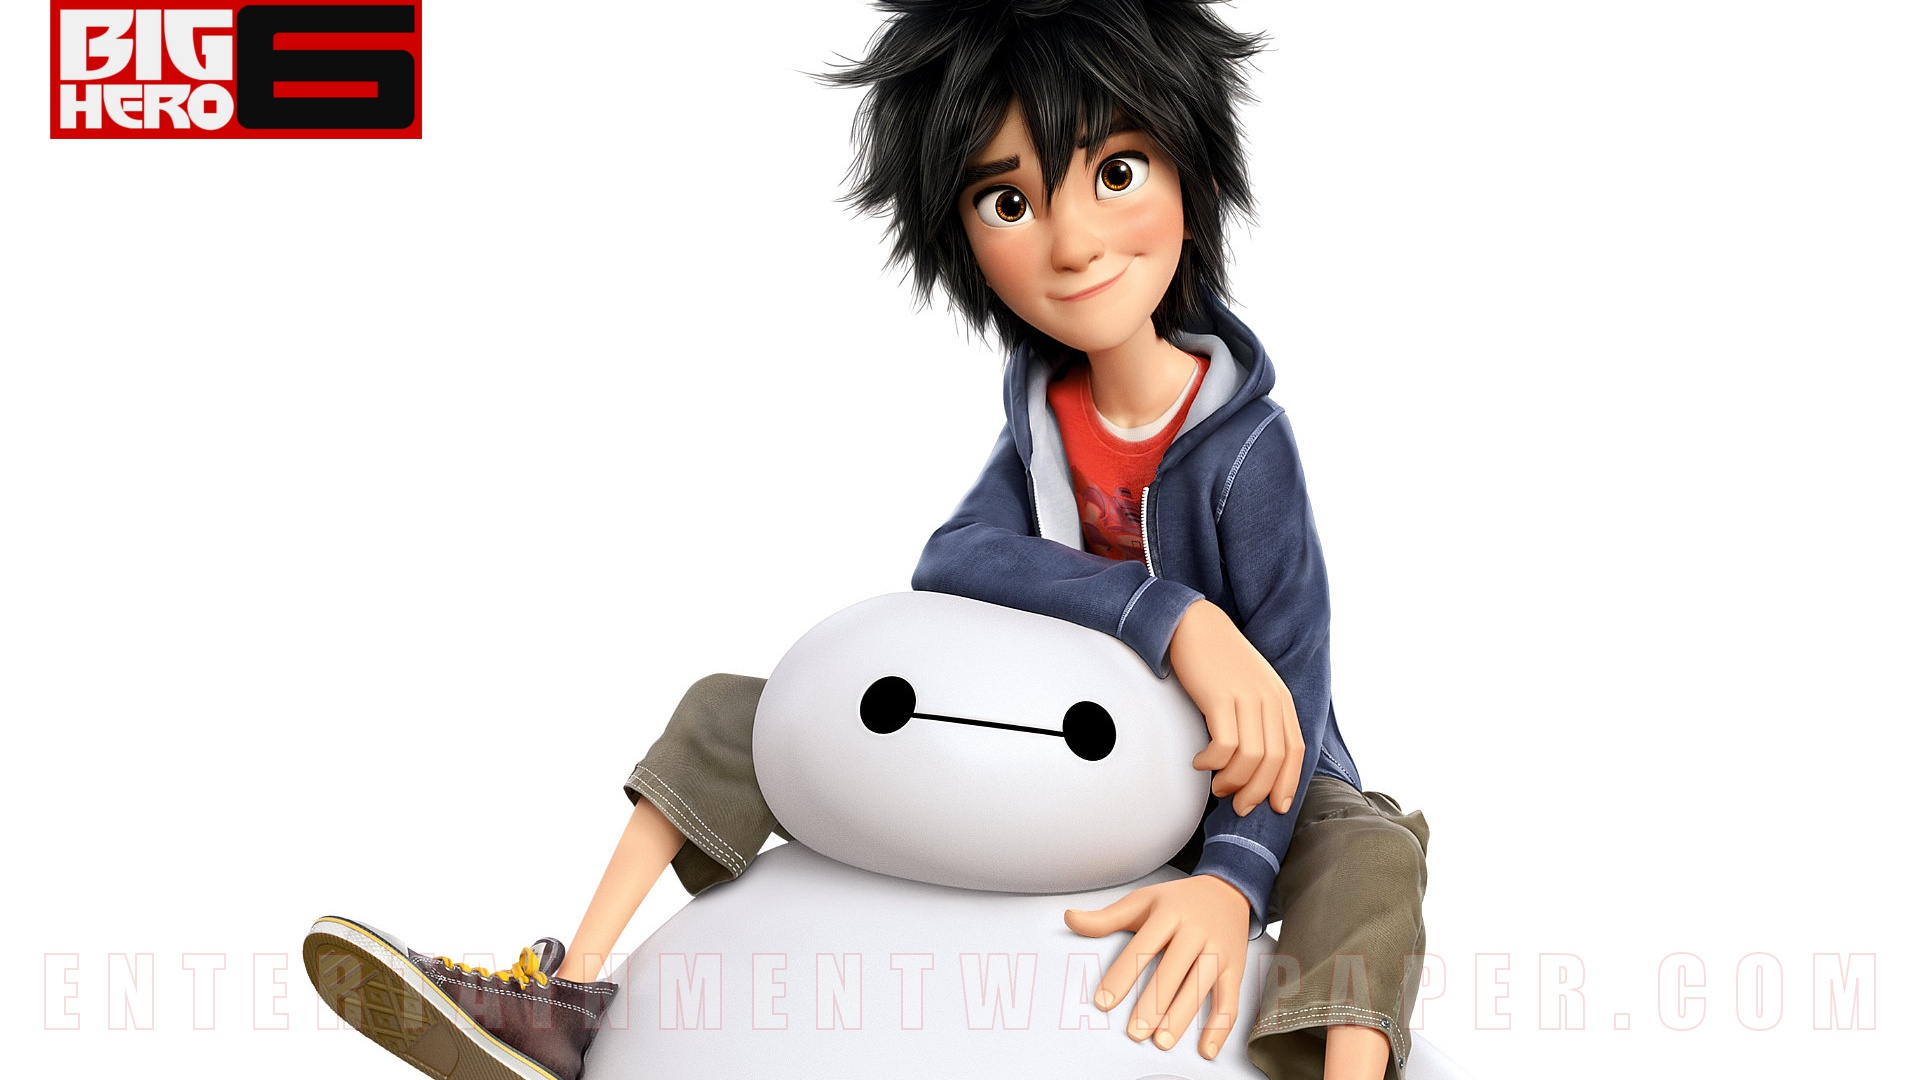 Entertainment Wallpapers Images Big Hero 6 HD Wallpaper And Background Photos